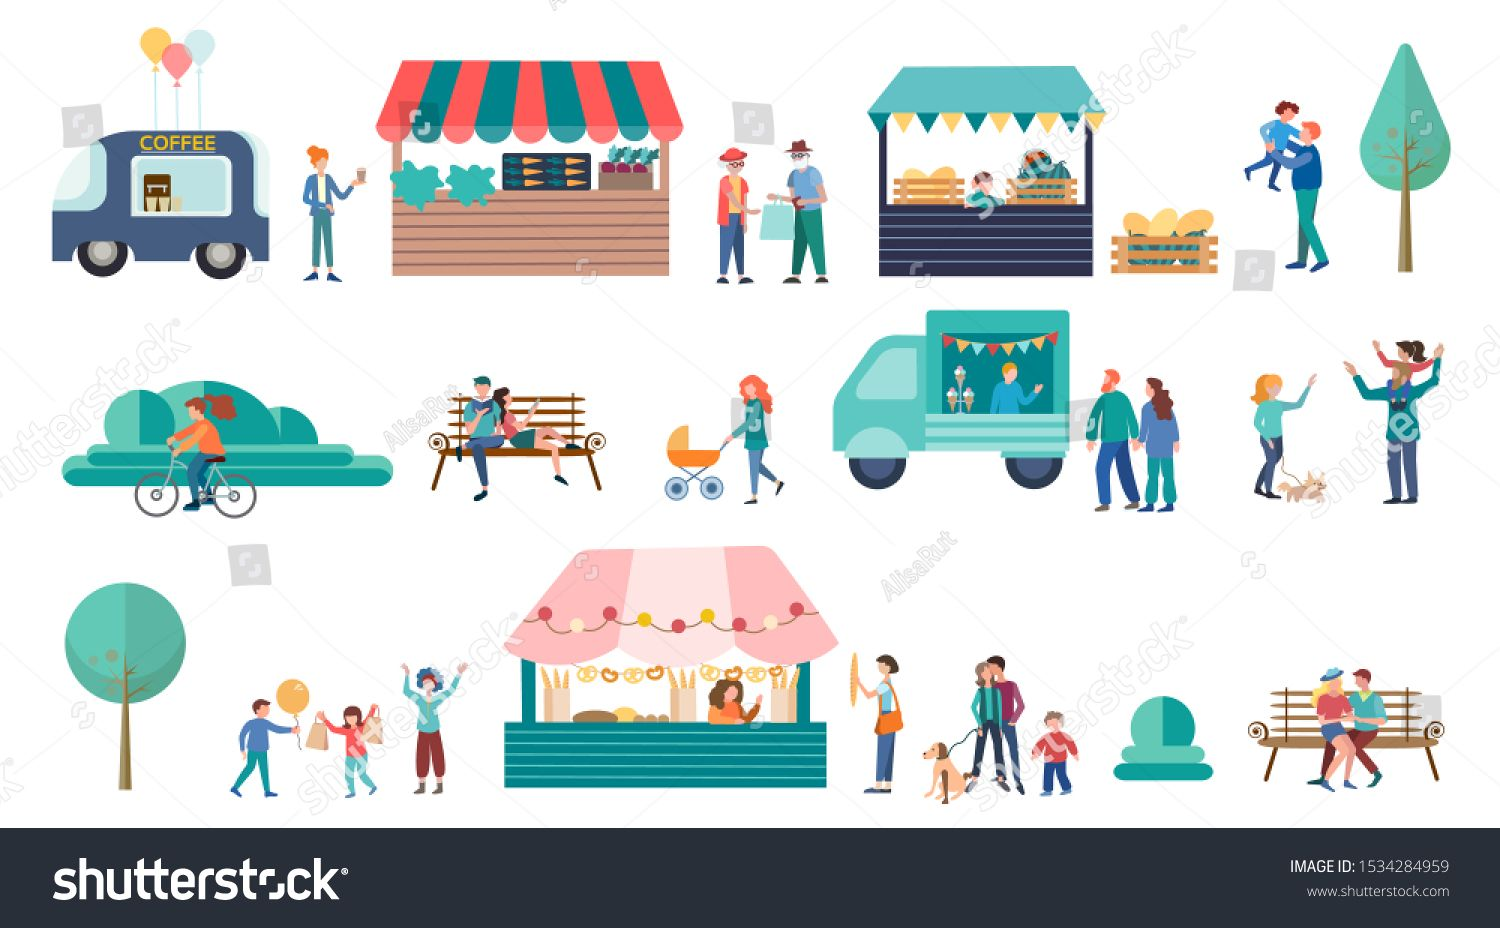 Food Street Fair concept vector illustration Family Festival Poster and banner Bakery Vegetable Stand Drinks Kiosks Offer Different Meals Family Spare Time Weekend